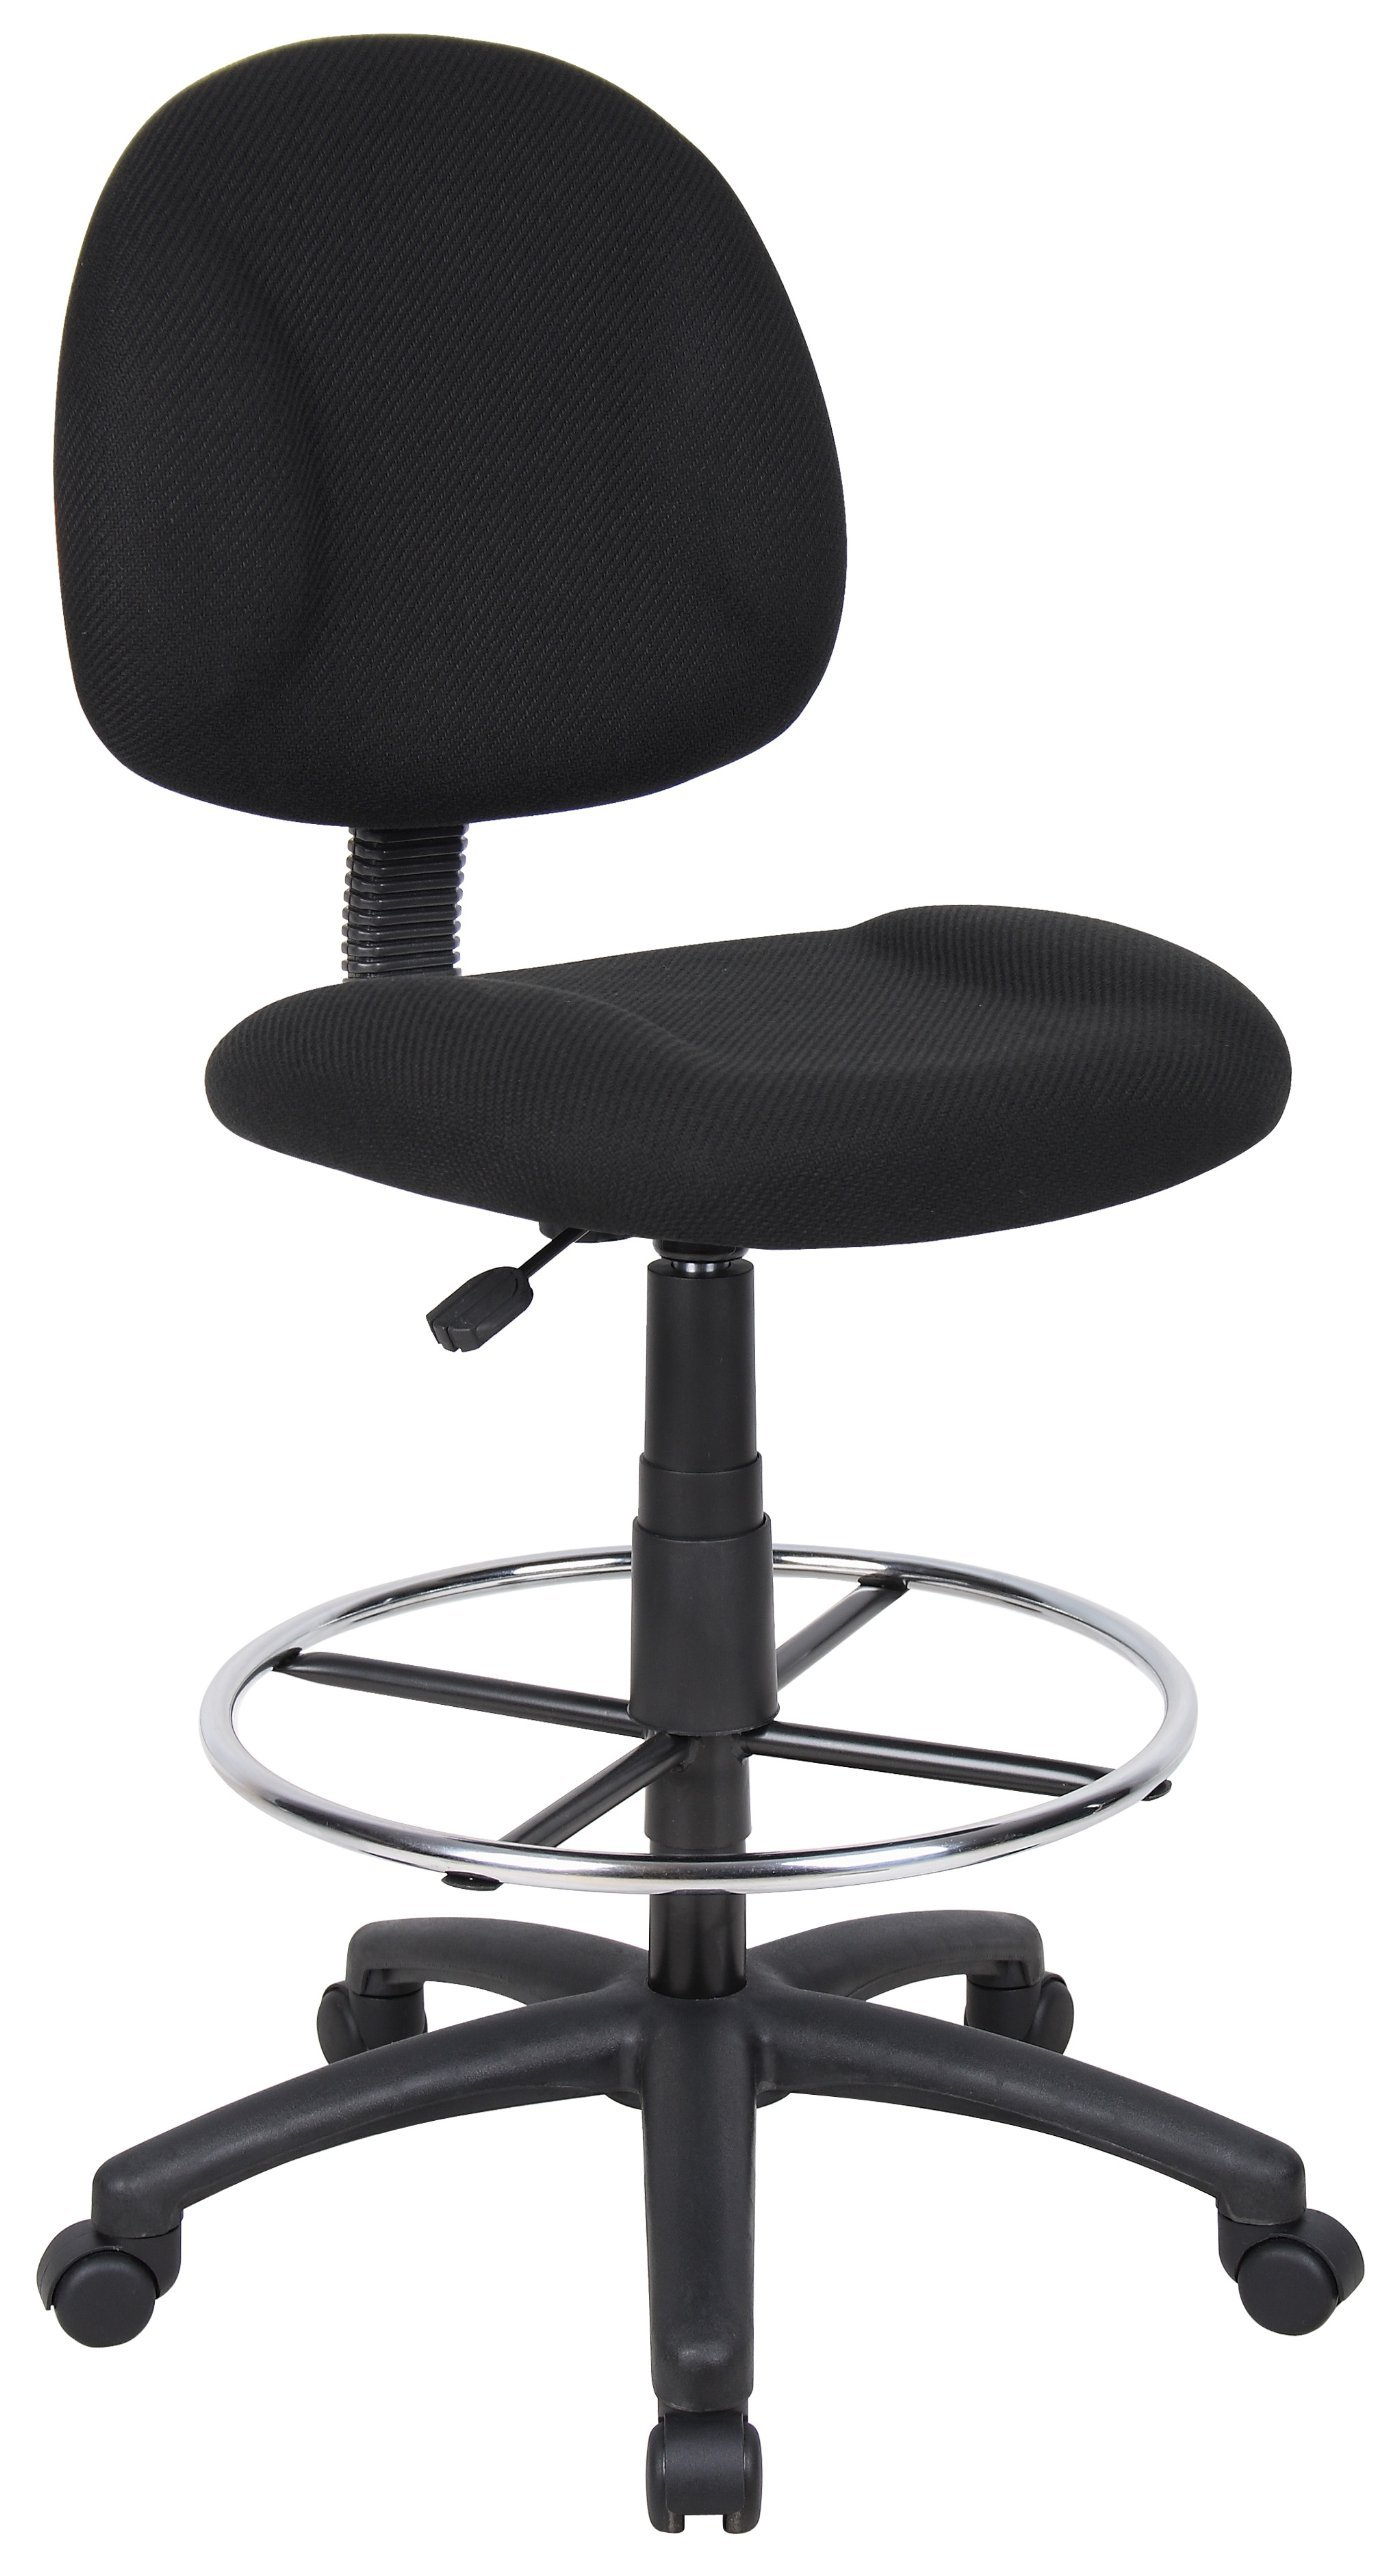 Boss Office Products B1615-BK Ergonomic Works Drafting Chair without Arms in Black (Renewed)